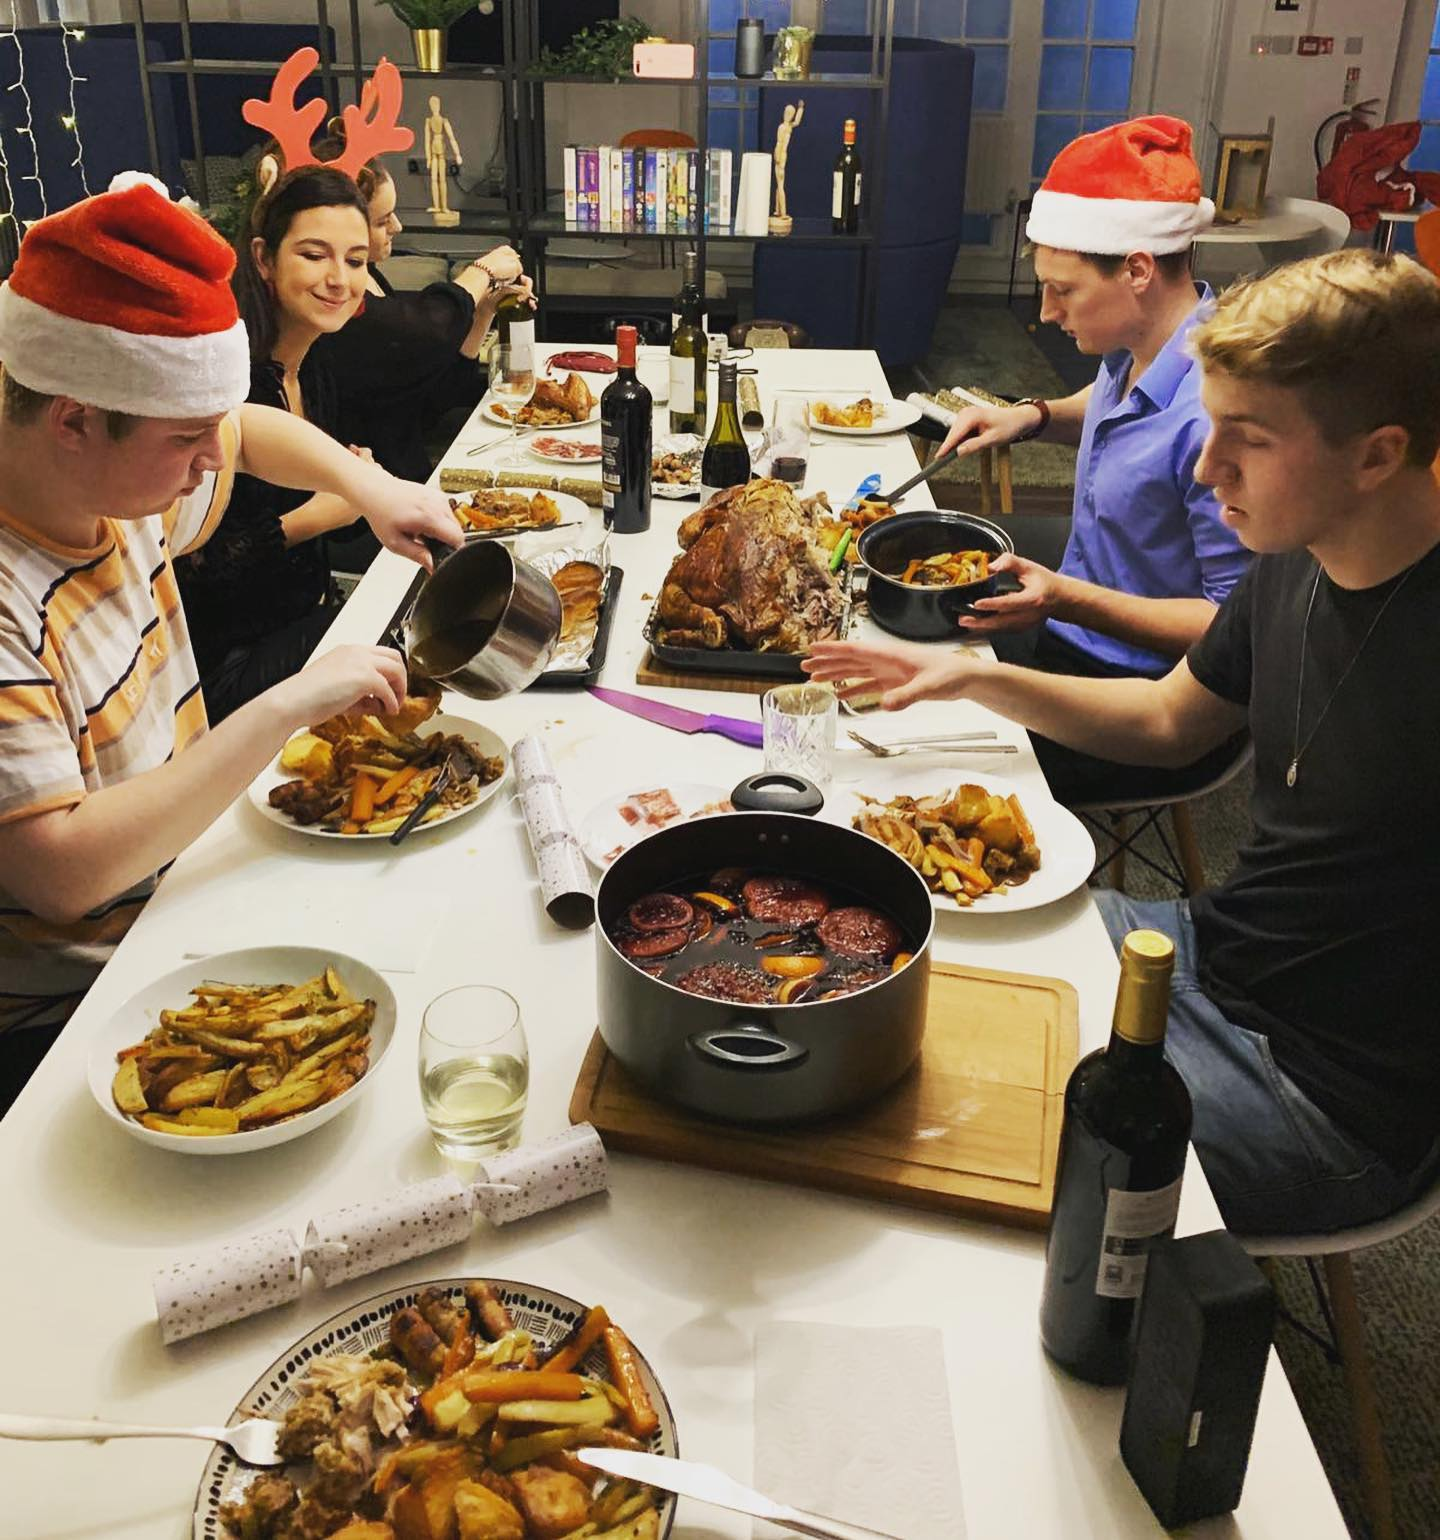 It would not be Christmas at Louise House without a 'Louisemas' party 🥳 Stay safe everyone and enjoy your Christmas dinner with your household bubble! . . .